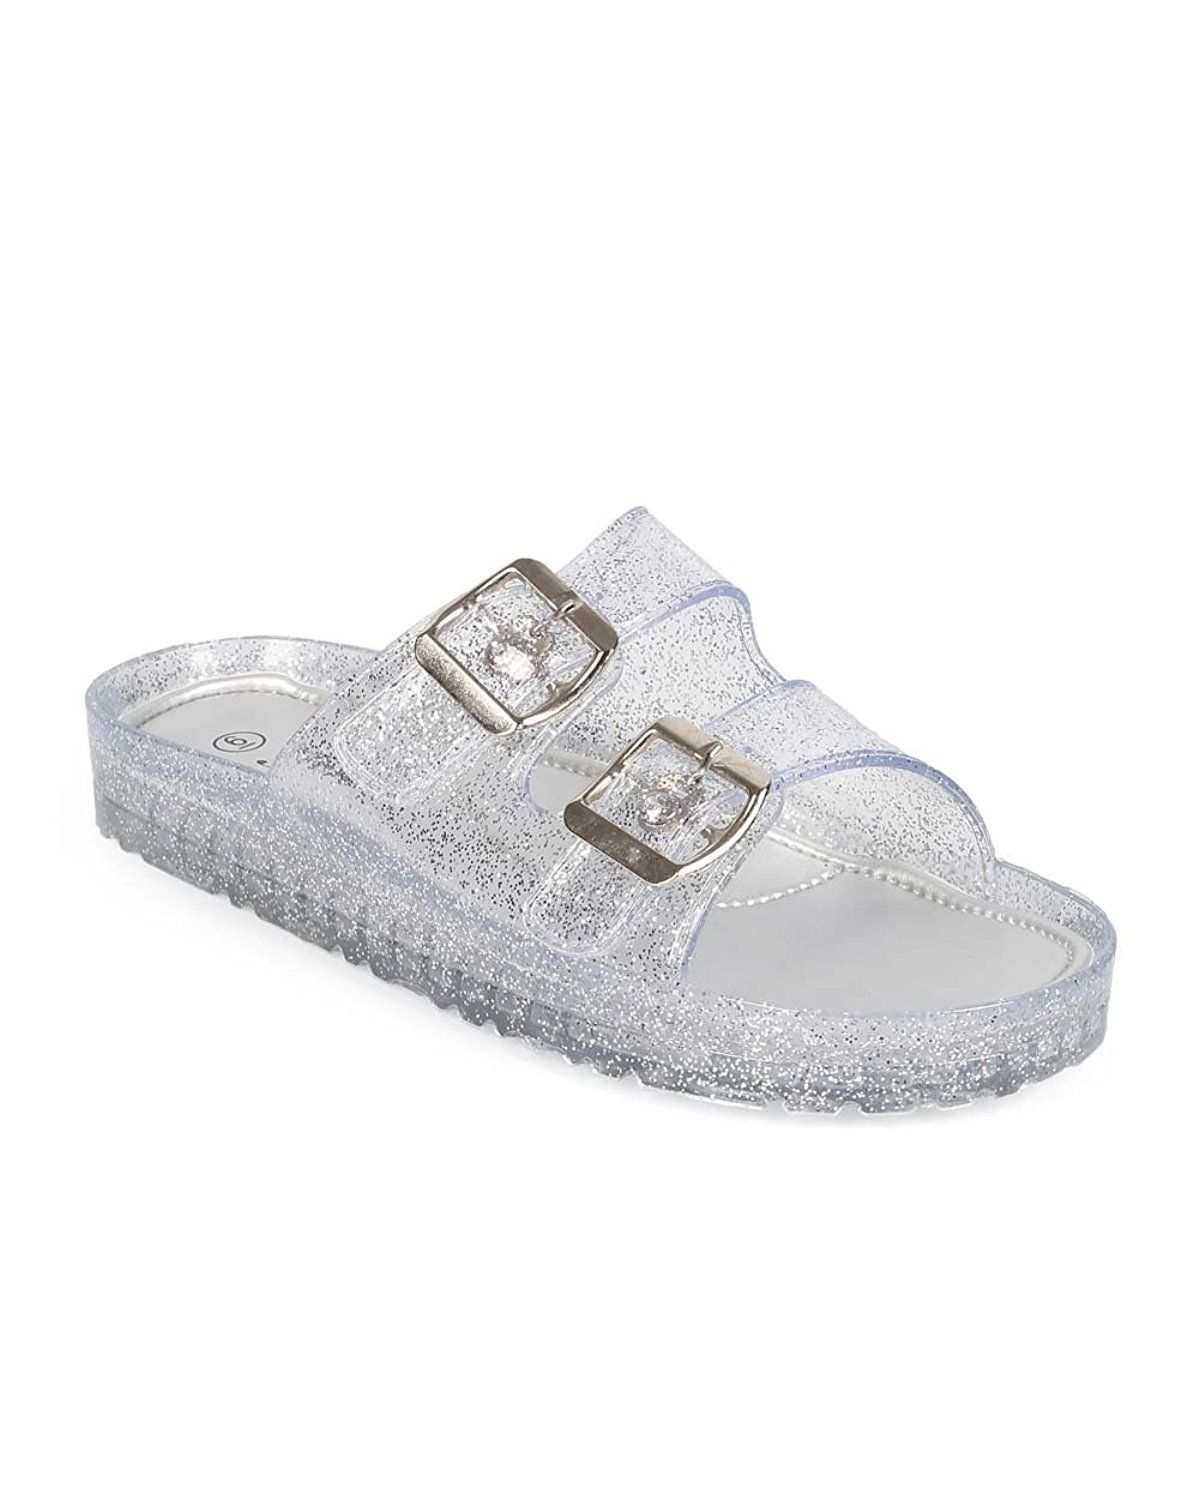 846a37d74f3b9f Forever EA81 Women Glitter Jelly Open Toe Double Buckle Footbed Sandal -  Silver   Wow! I love this. Check it out now!   Jelly Sandals